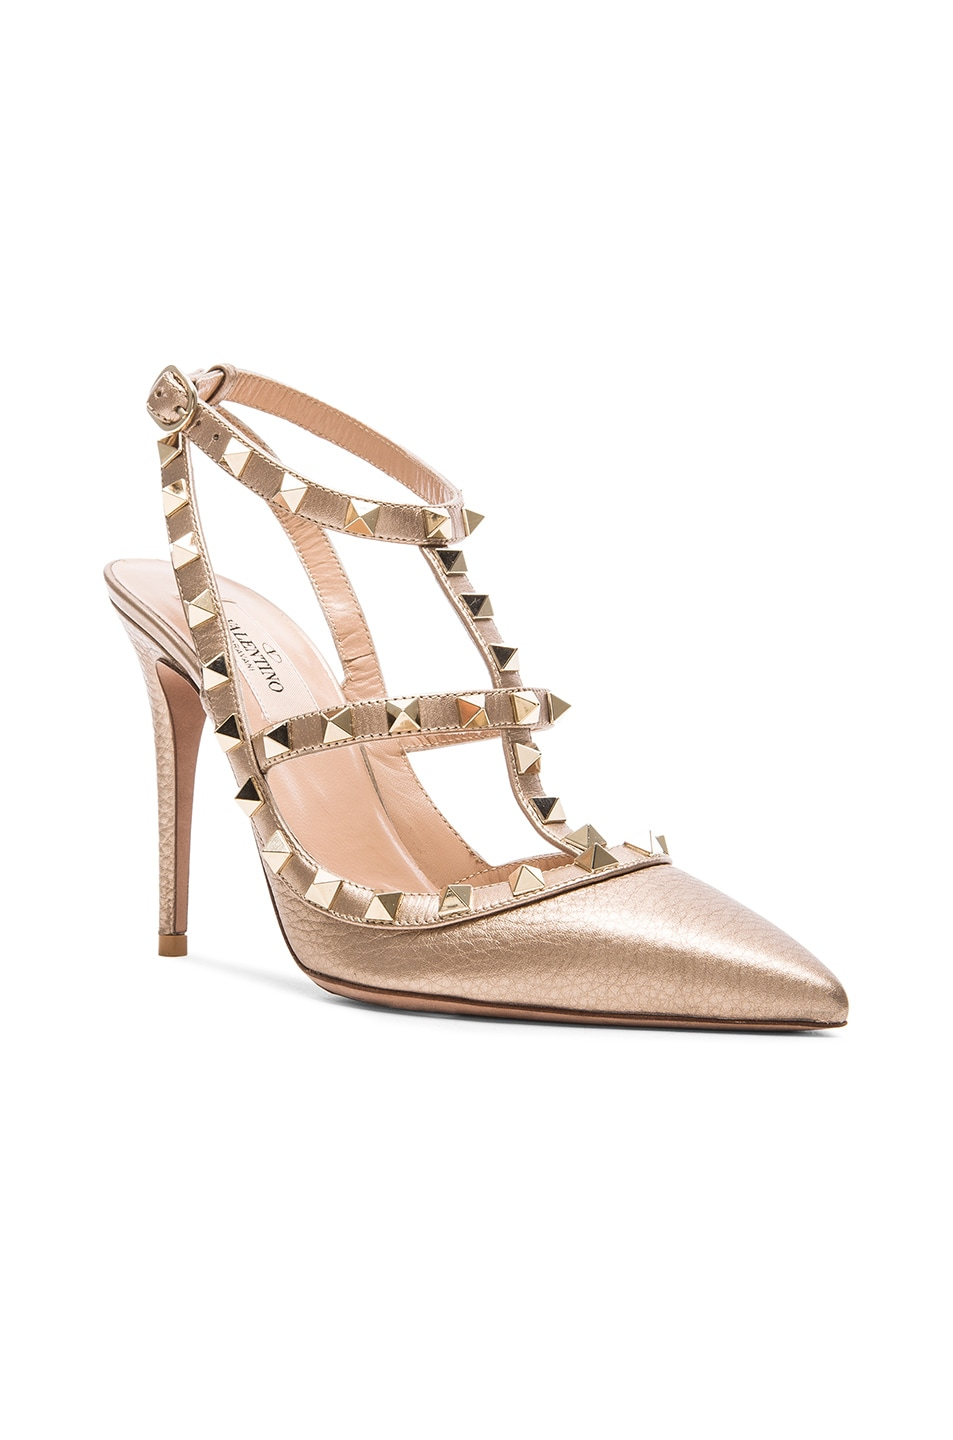 8fce4f8e7d42 Image 2 of Valentino Rockstud Leather Slingbacks T.100 in Rose Gold